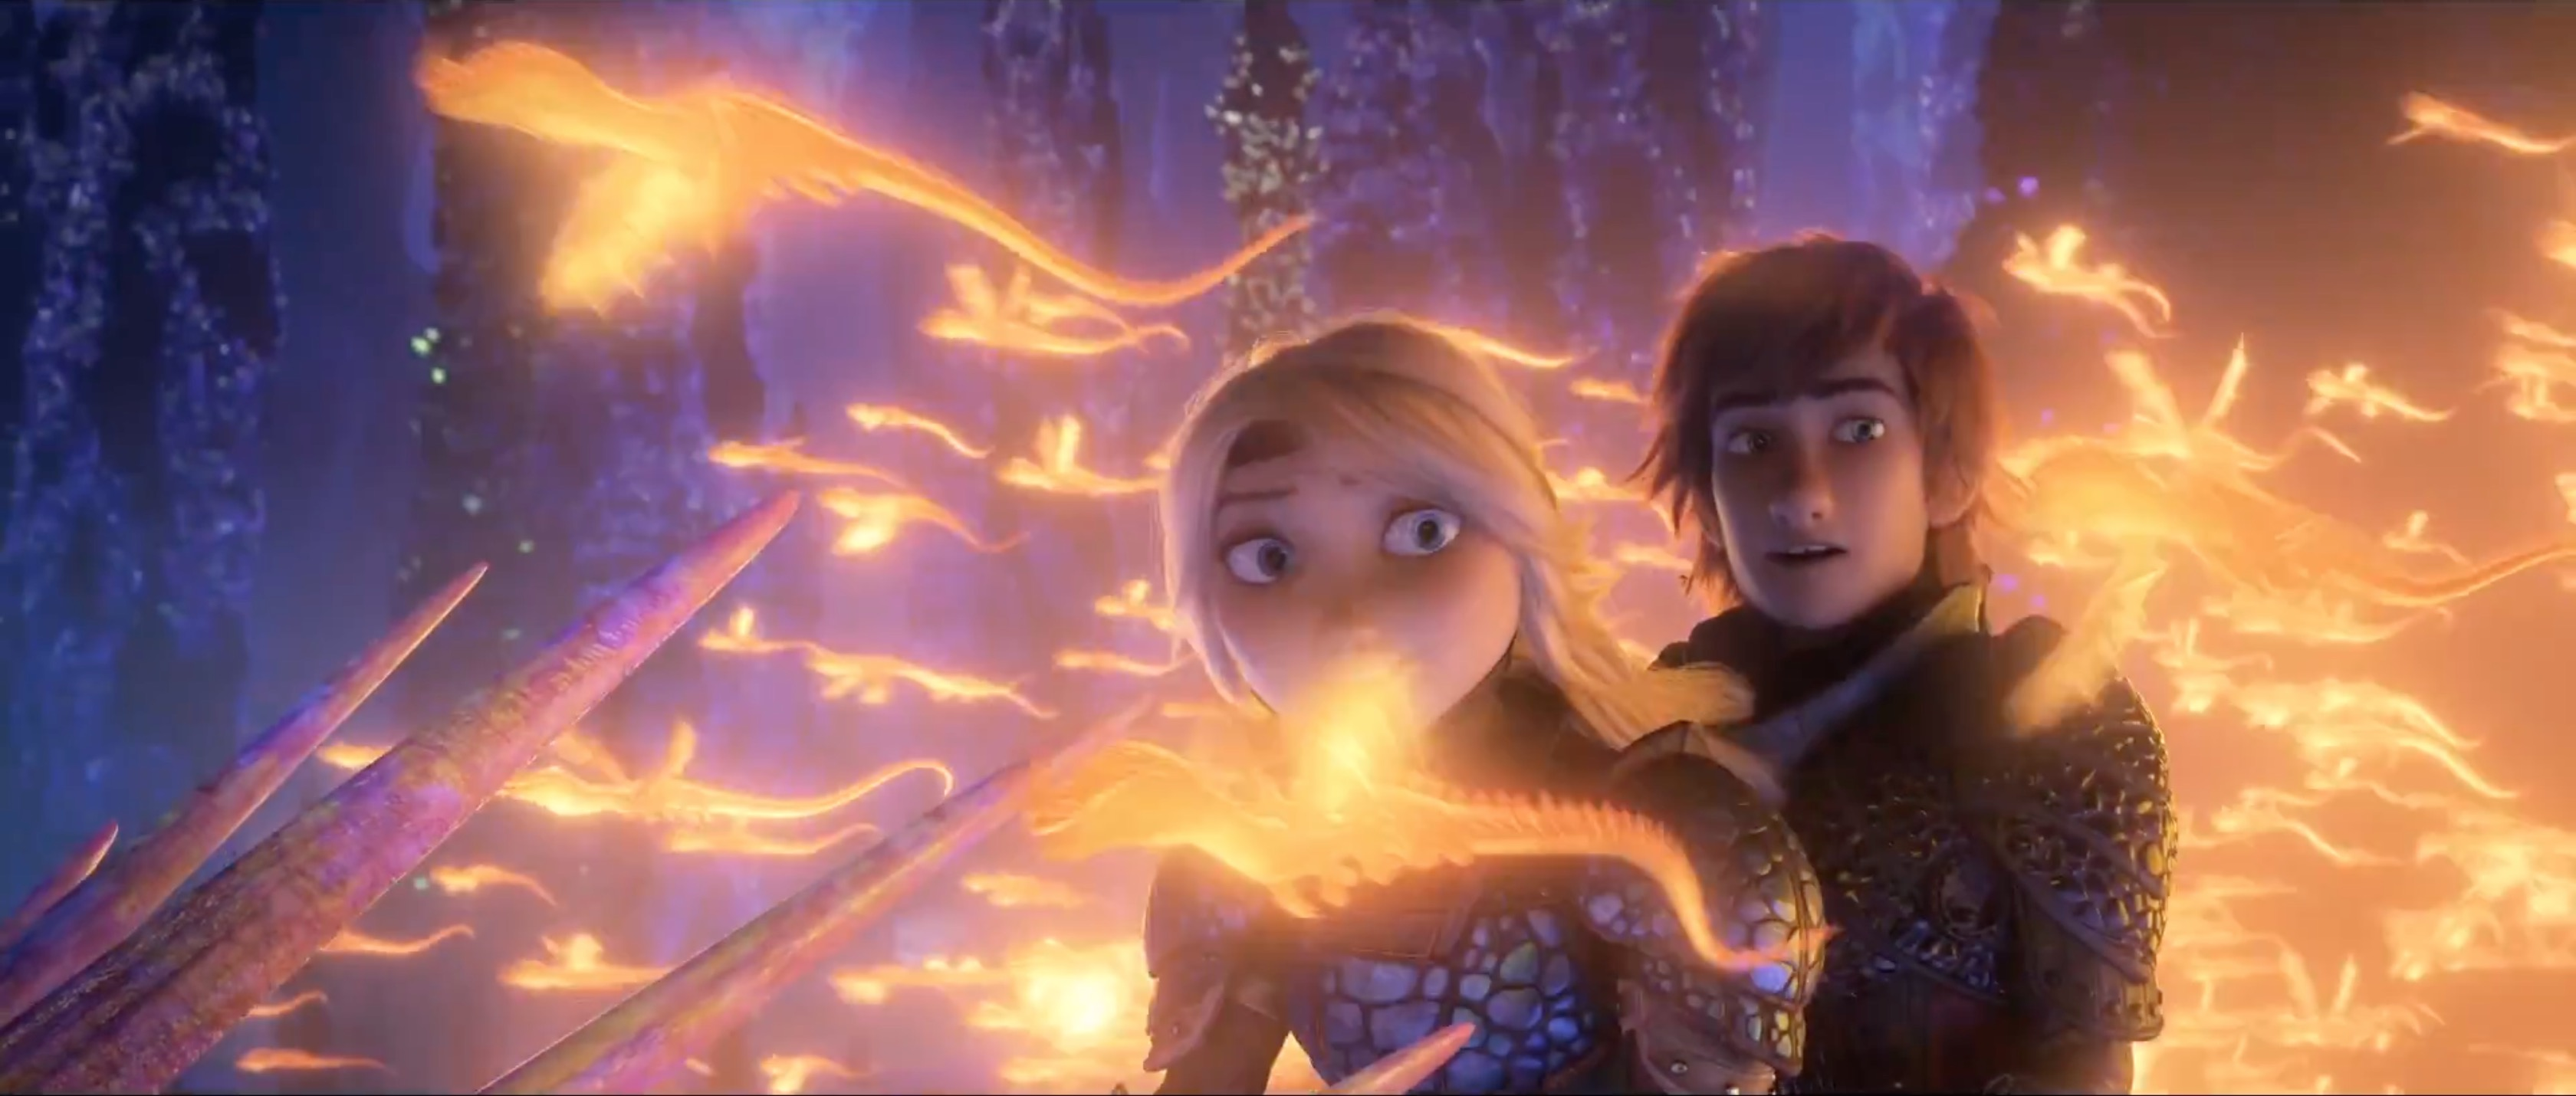 How to train your dragon 3 the hidden world official trailer ccuart Images